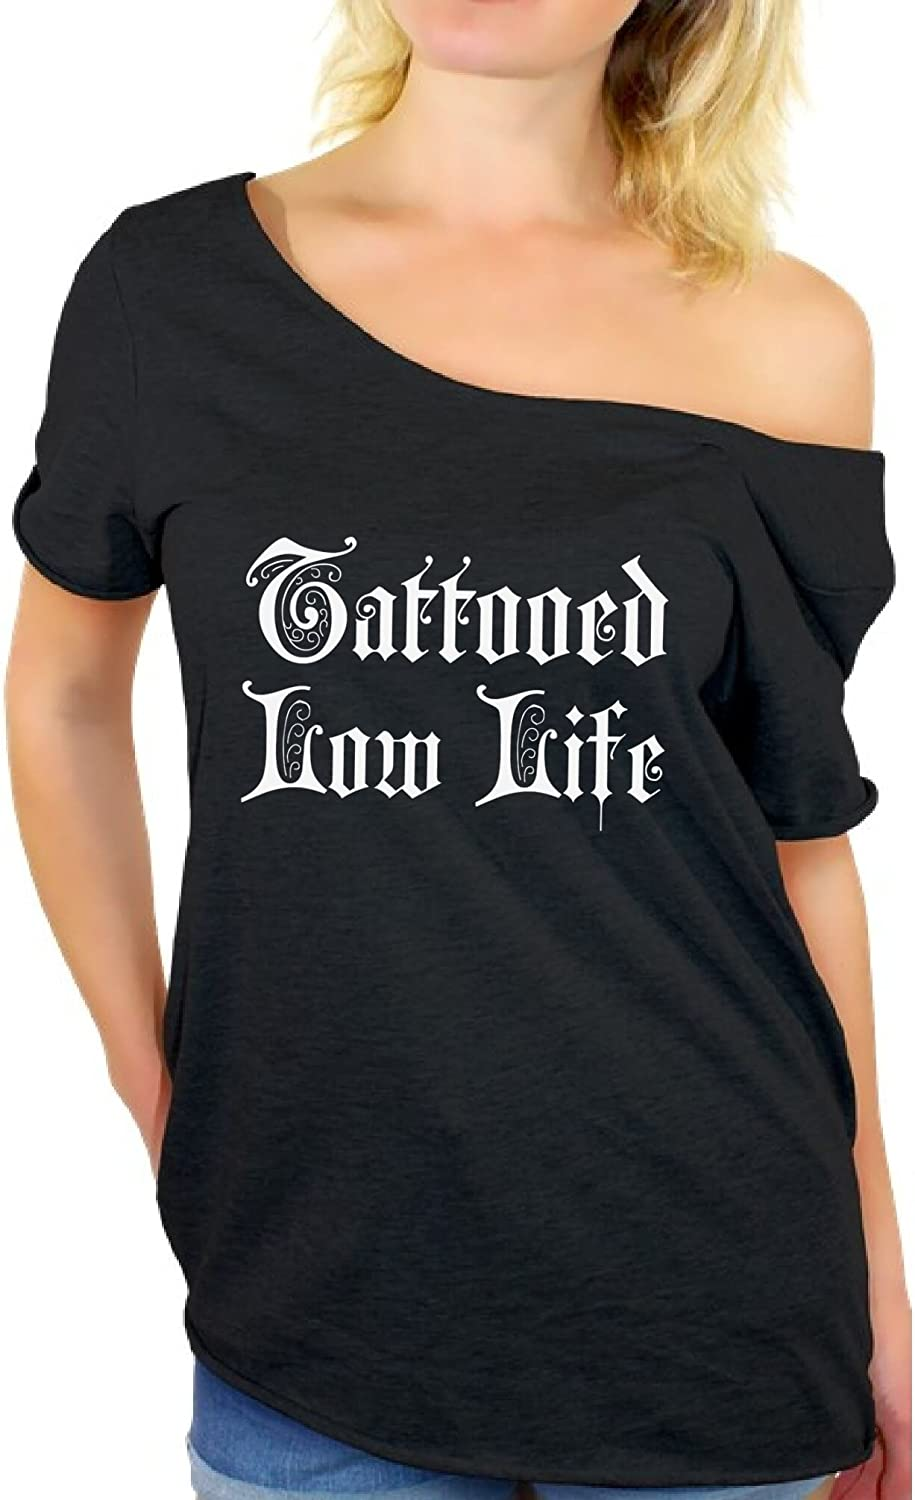 Awkward Styles Tattoo Off Shoulder Shirt Tattooed Tshirt Gifts for Tattoo Lovers